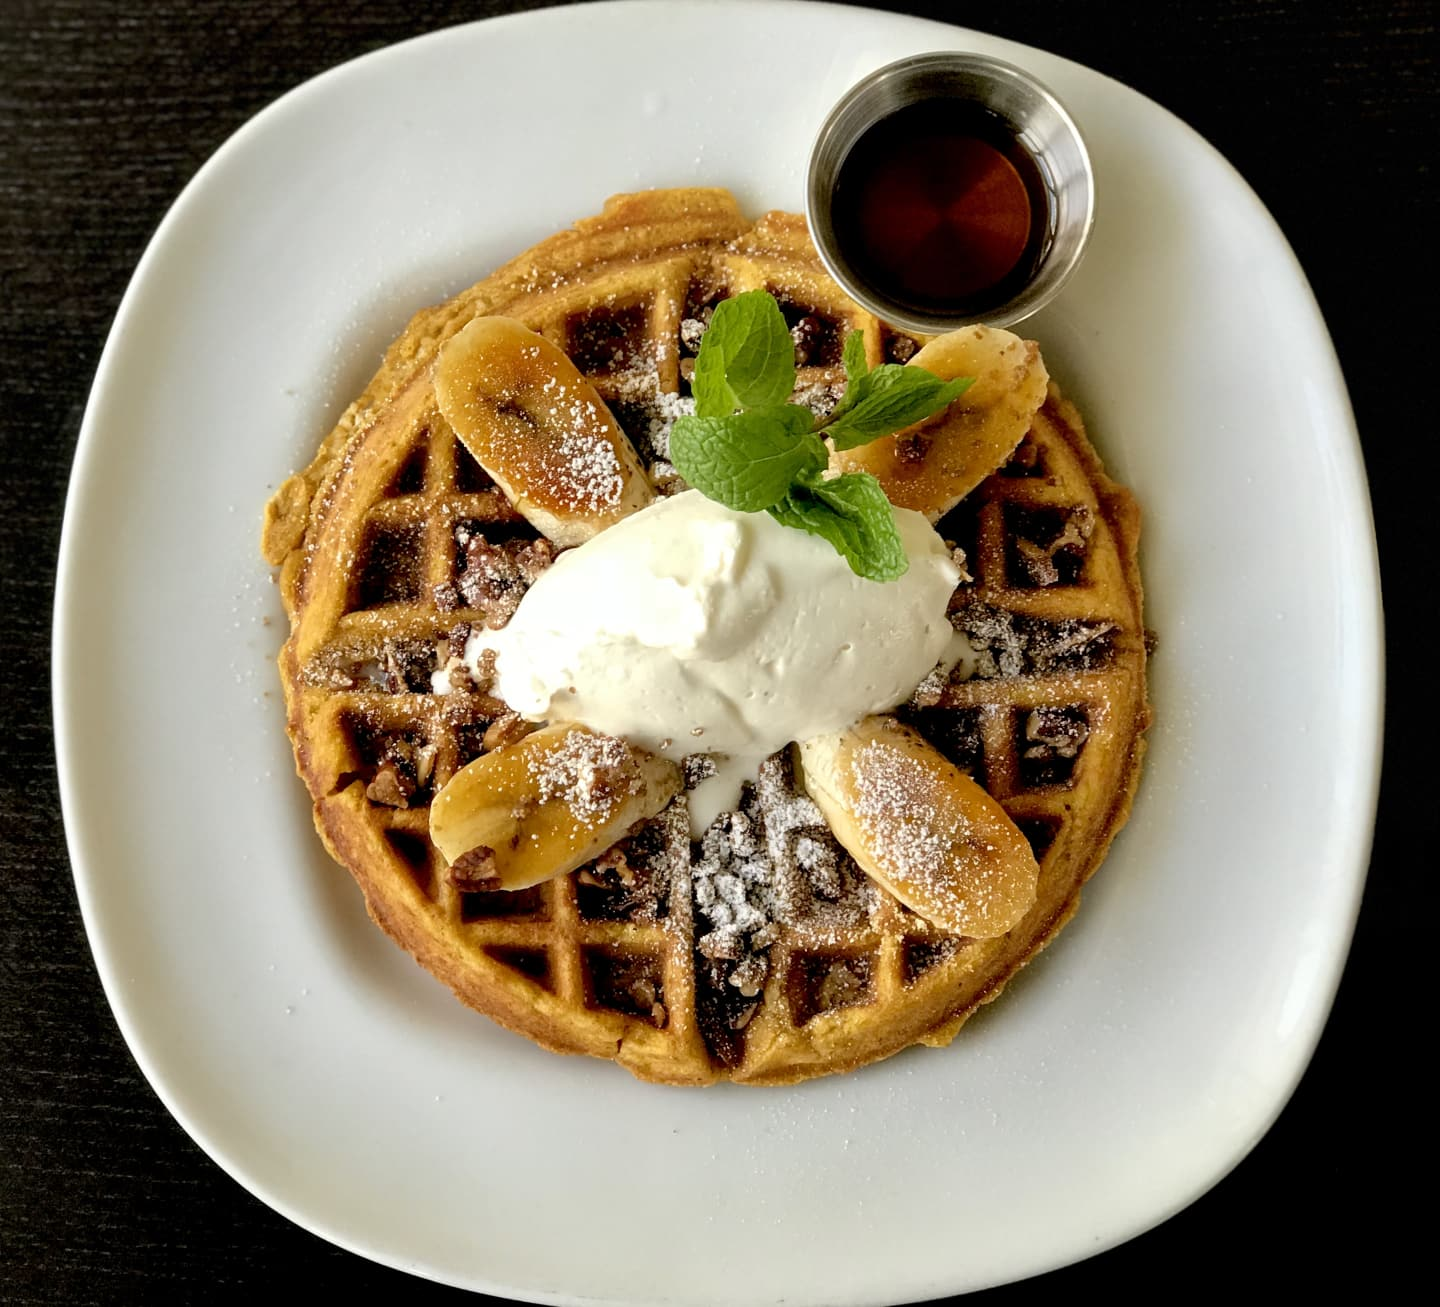 Pumpkin Oatmeal Waffle w/ Caramelized Bananas,Candied Pecans & Real Maple Syrup